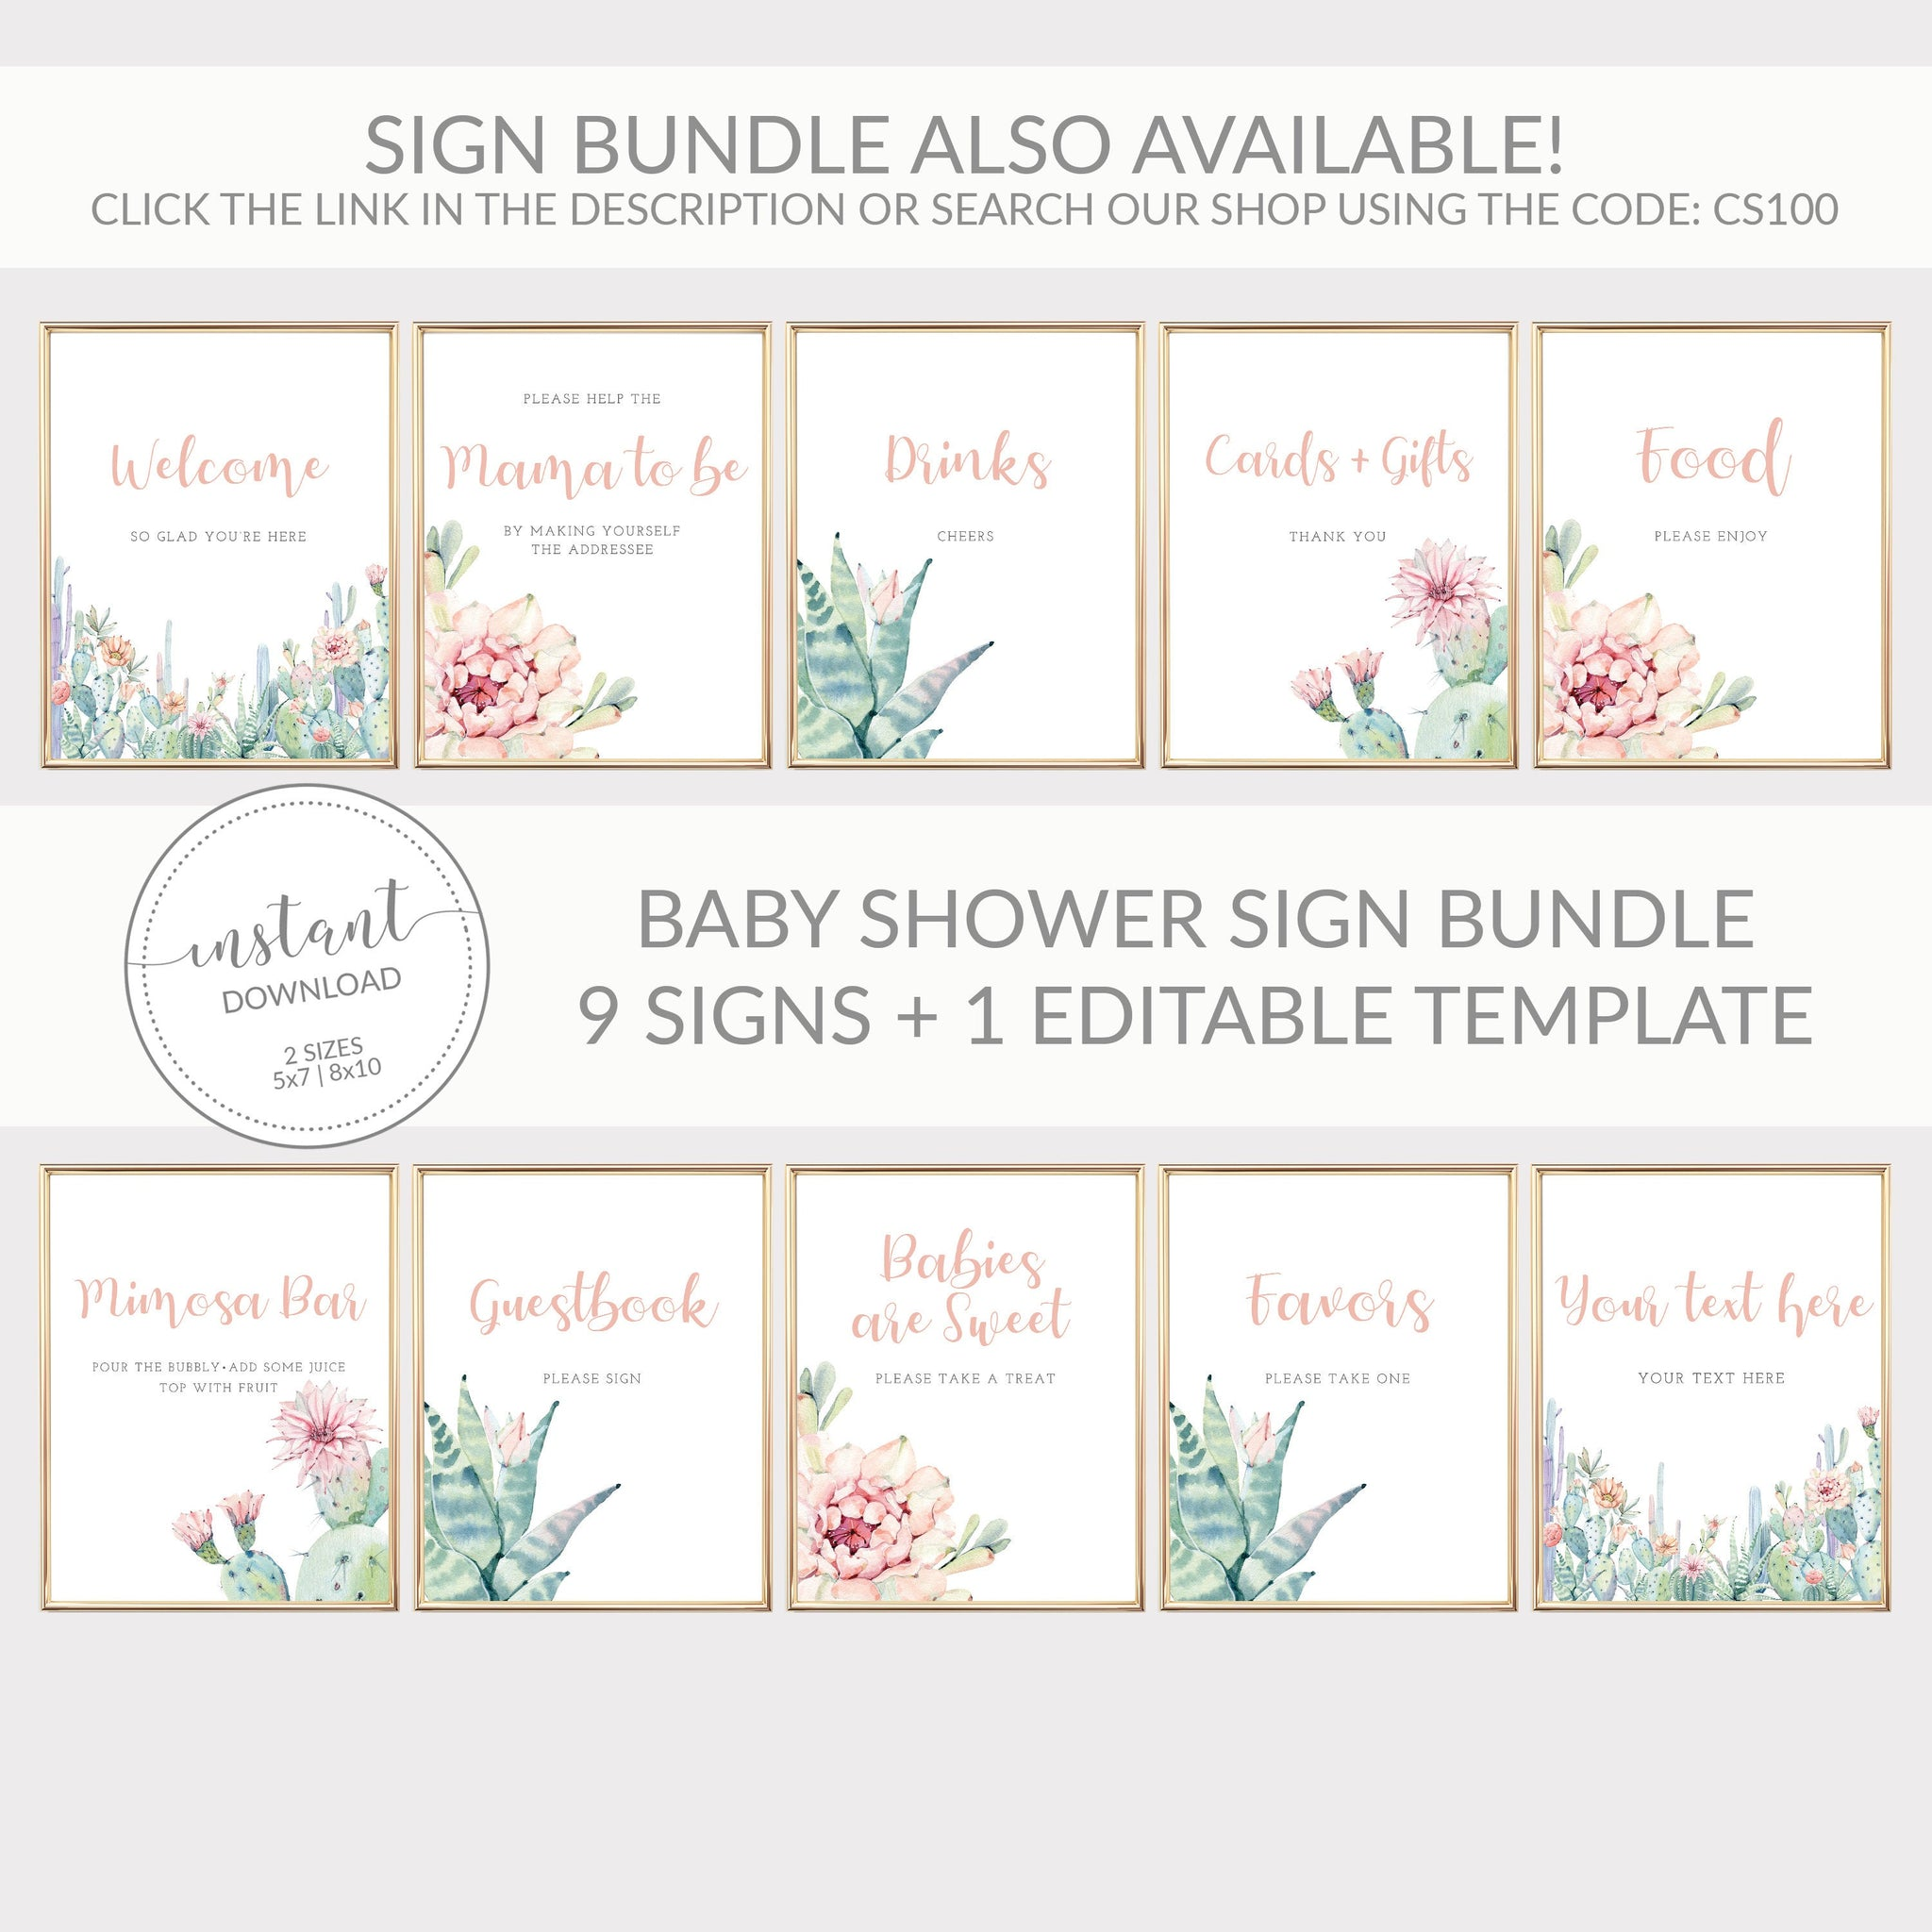 Cactus Baby Shower Invitation, Girl Baby Shower Invitation Template, Editable DIGITAL DOWNLOAD - CS100